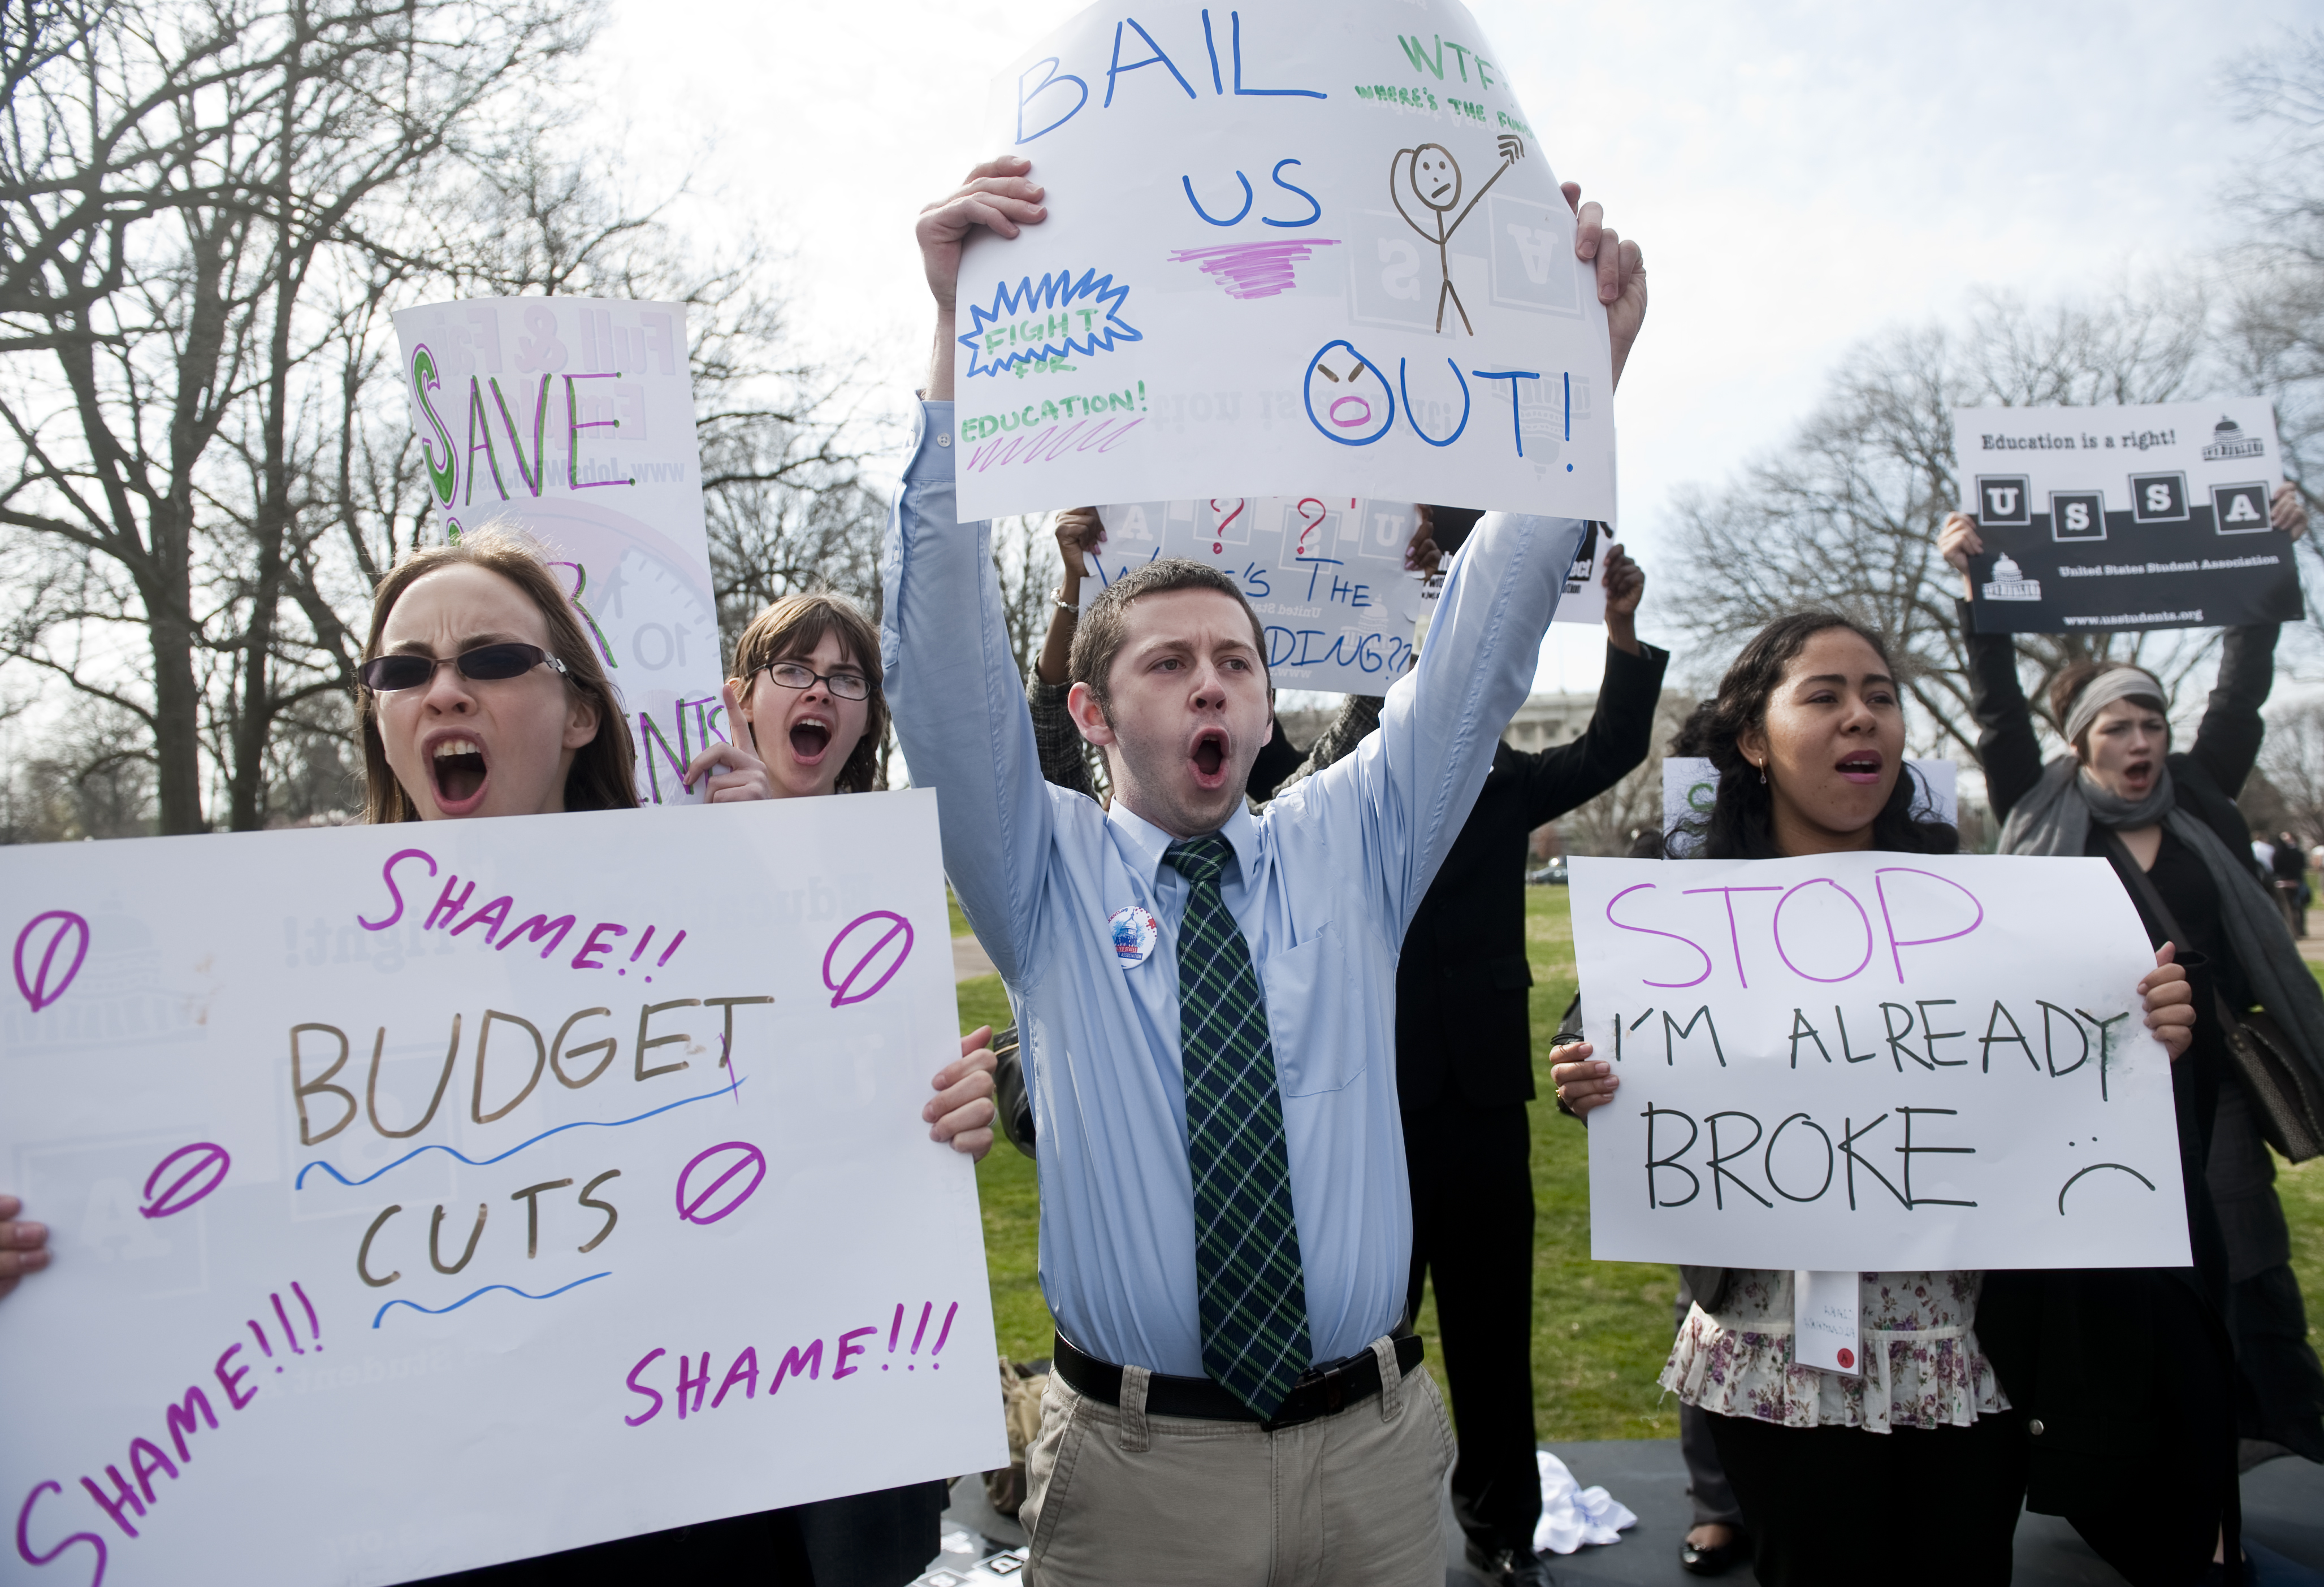 Student Financial Aid Rally